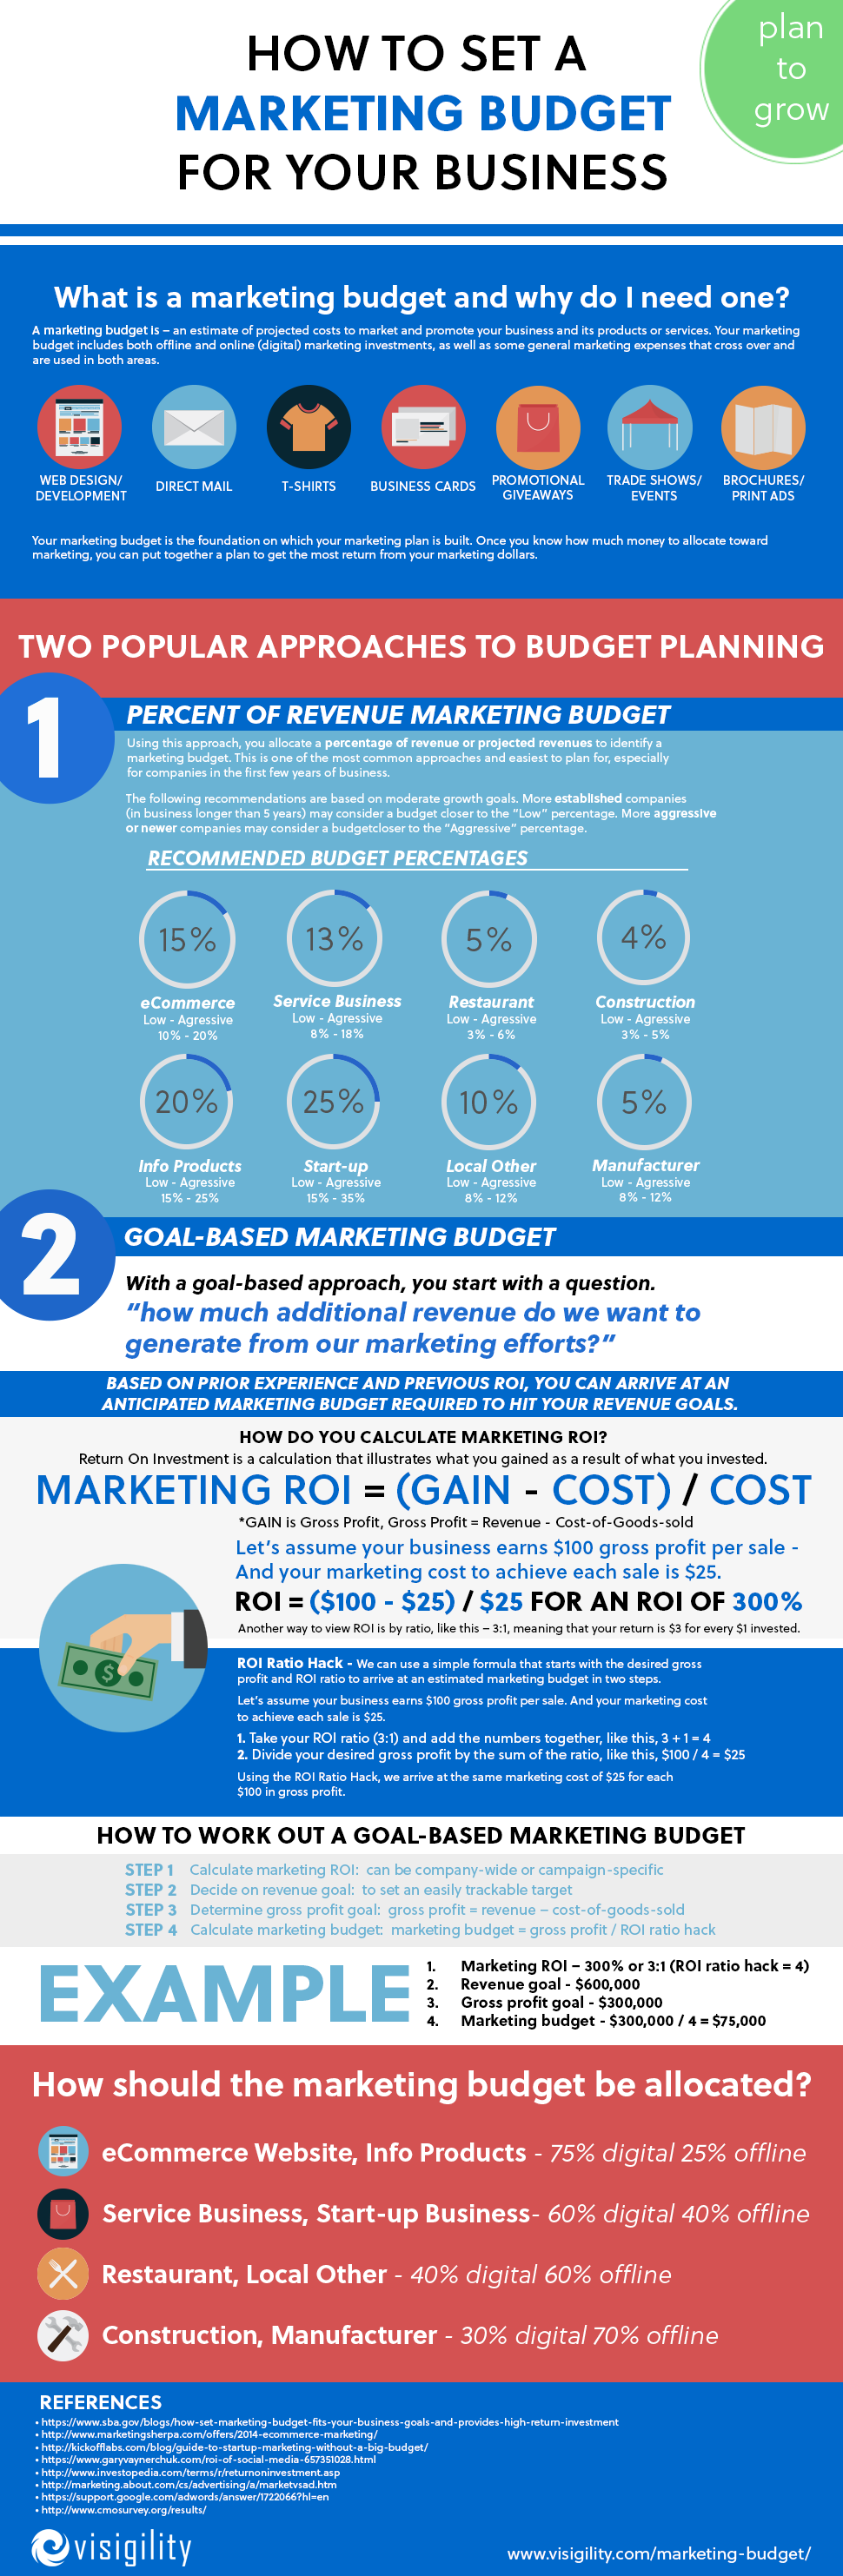 How To Set A Marketing Budget For Your Business